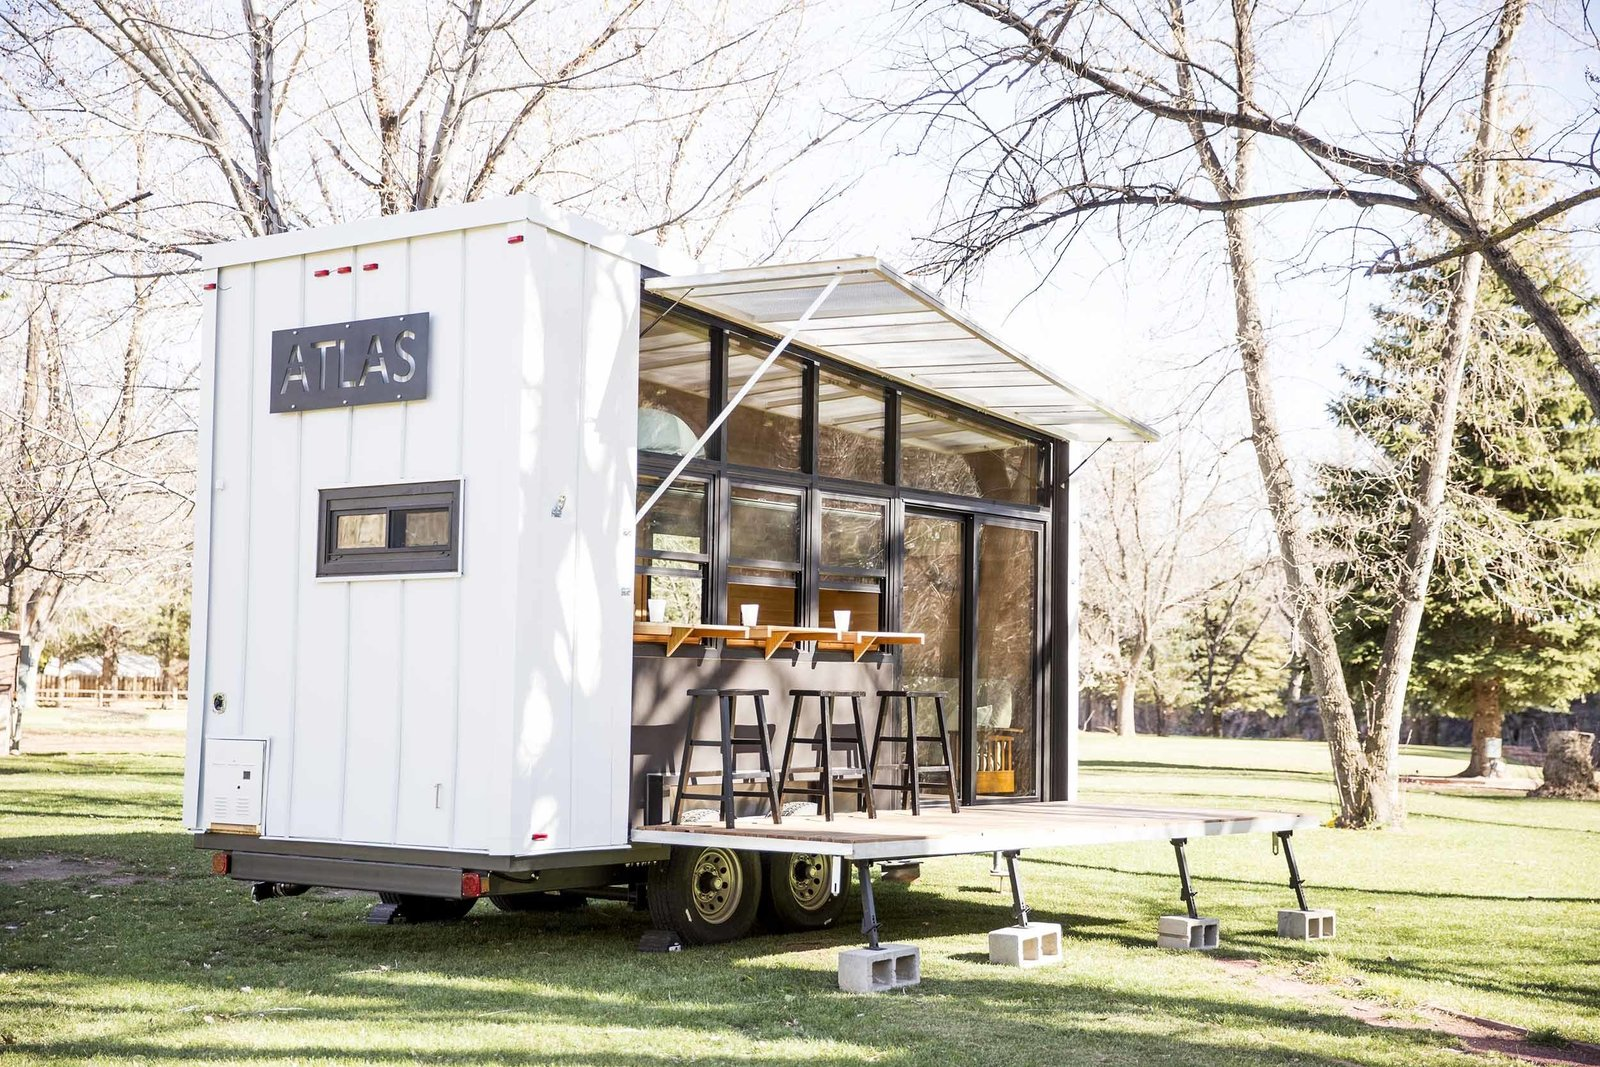 Exterior, Camper Building Type, and Flat RoofLine Unpacking the deck and awning reveals a glass wall that opens the trailer to its environment, wherever that may be. The ATLAS can be hitched to a truck to travel easily from campsite to campsite.  A Tiny Trailer Home Harvests Solar Power and Rainwater to Save Energy by Luke Hopping